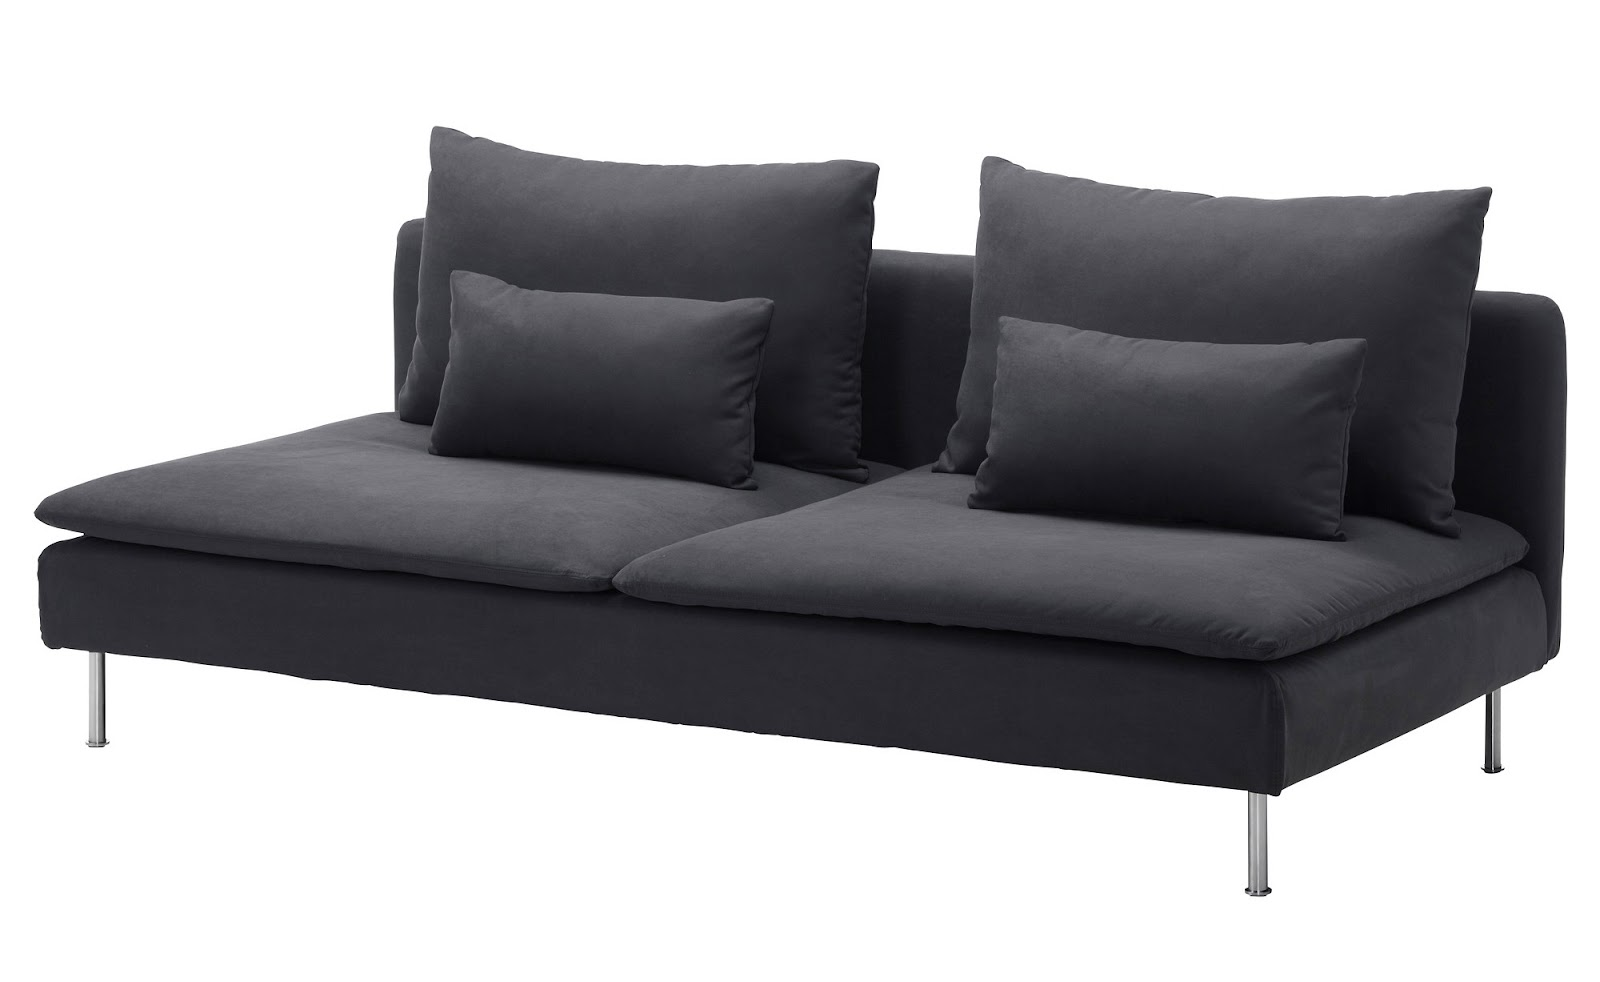 Ikea Sofa K New Sofa Ikea Söderhamn Review Nordic Days By Flor